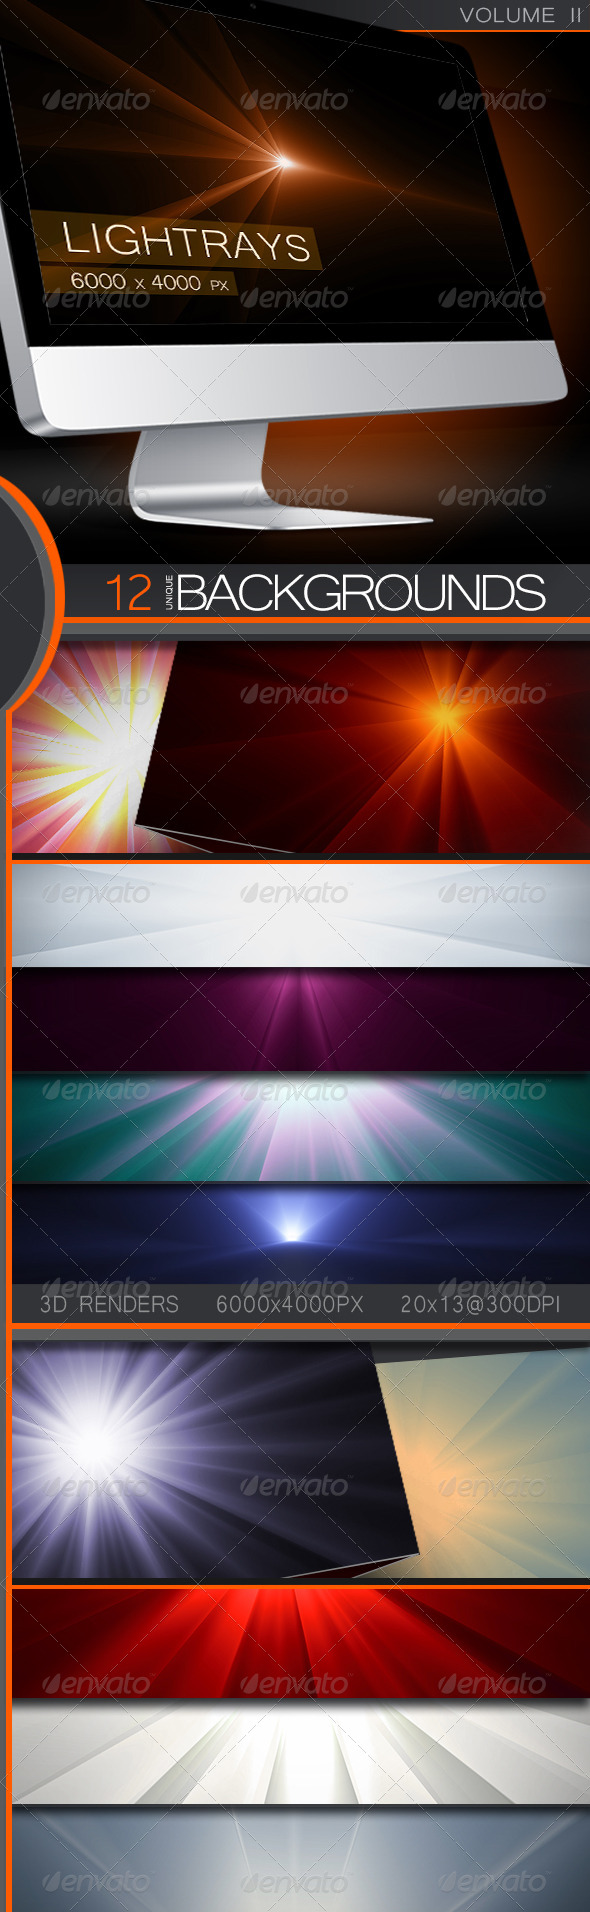 GraphicRiver 3D LightRay Backgrounds Volume 2 5256639